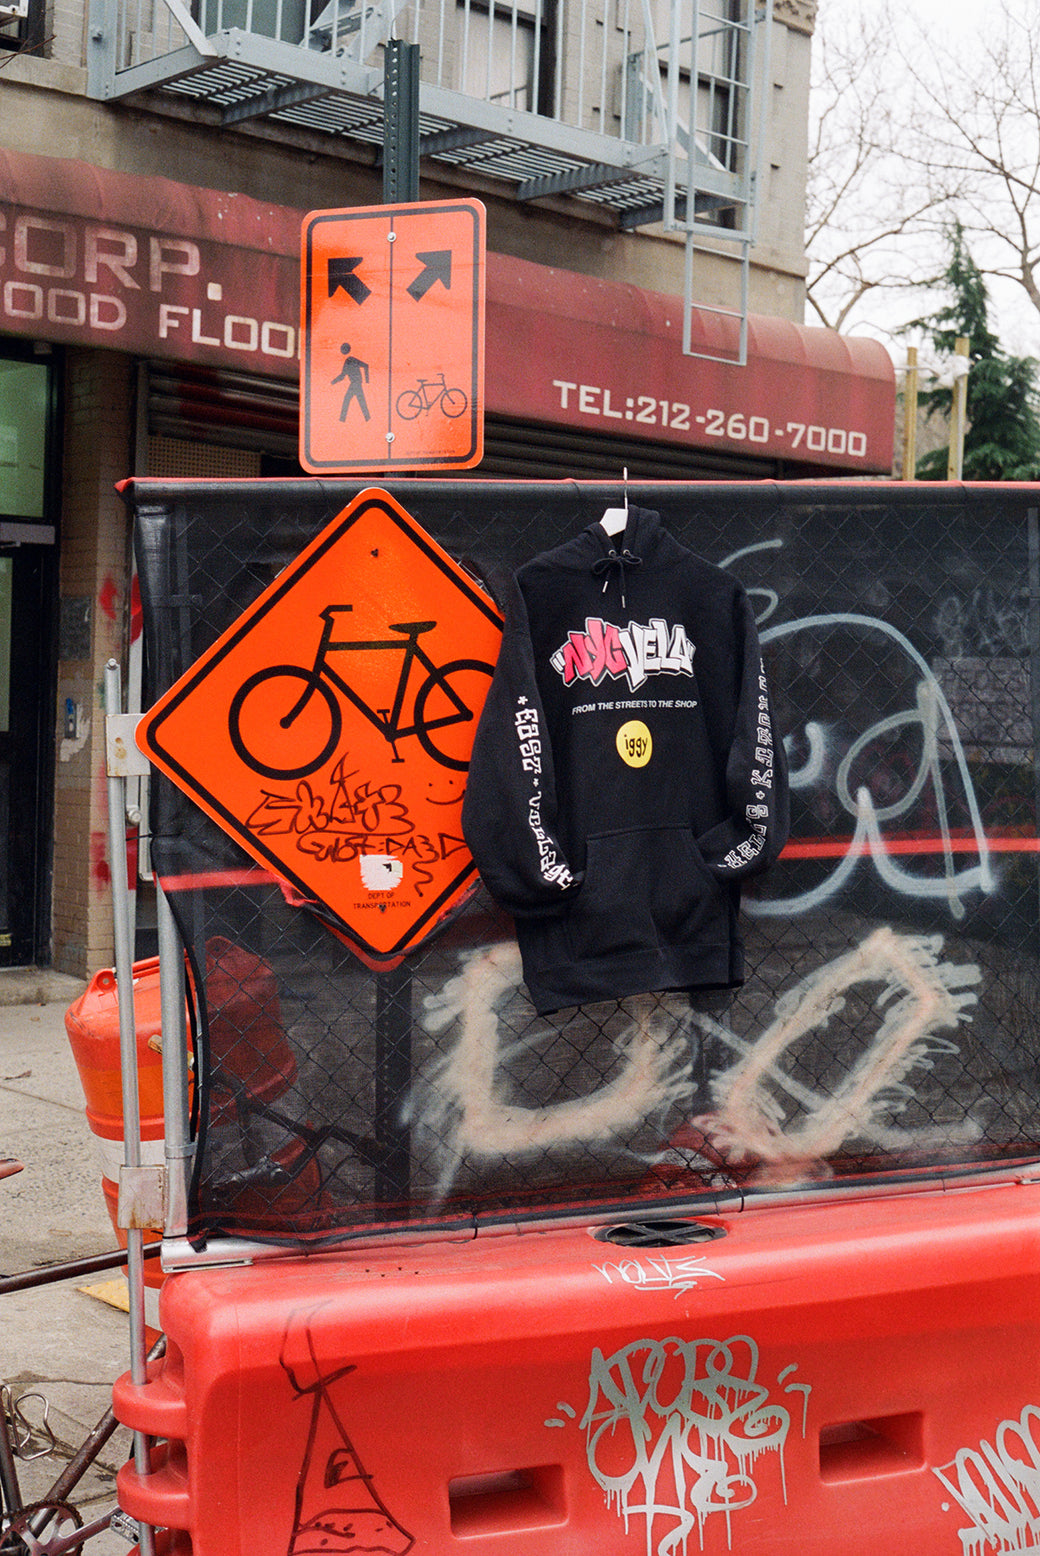 NYC VELO HOODED SWEATSHIRT